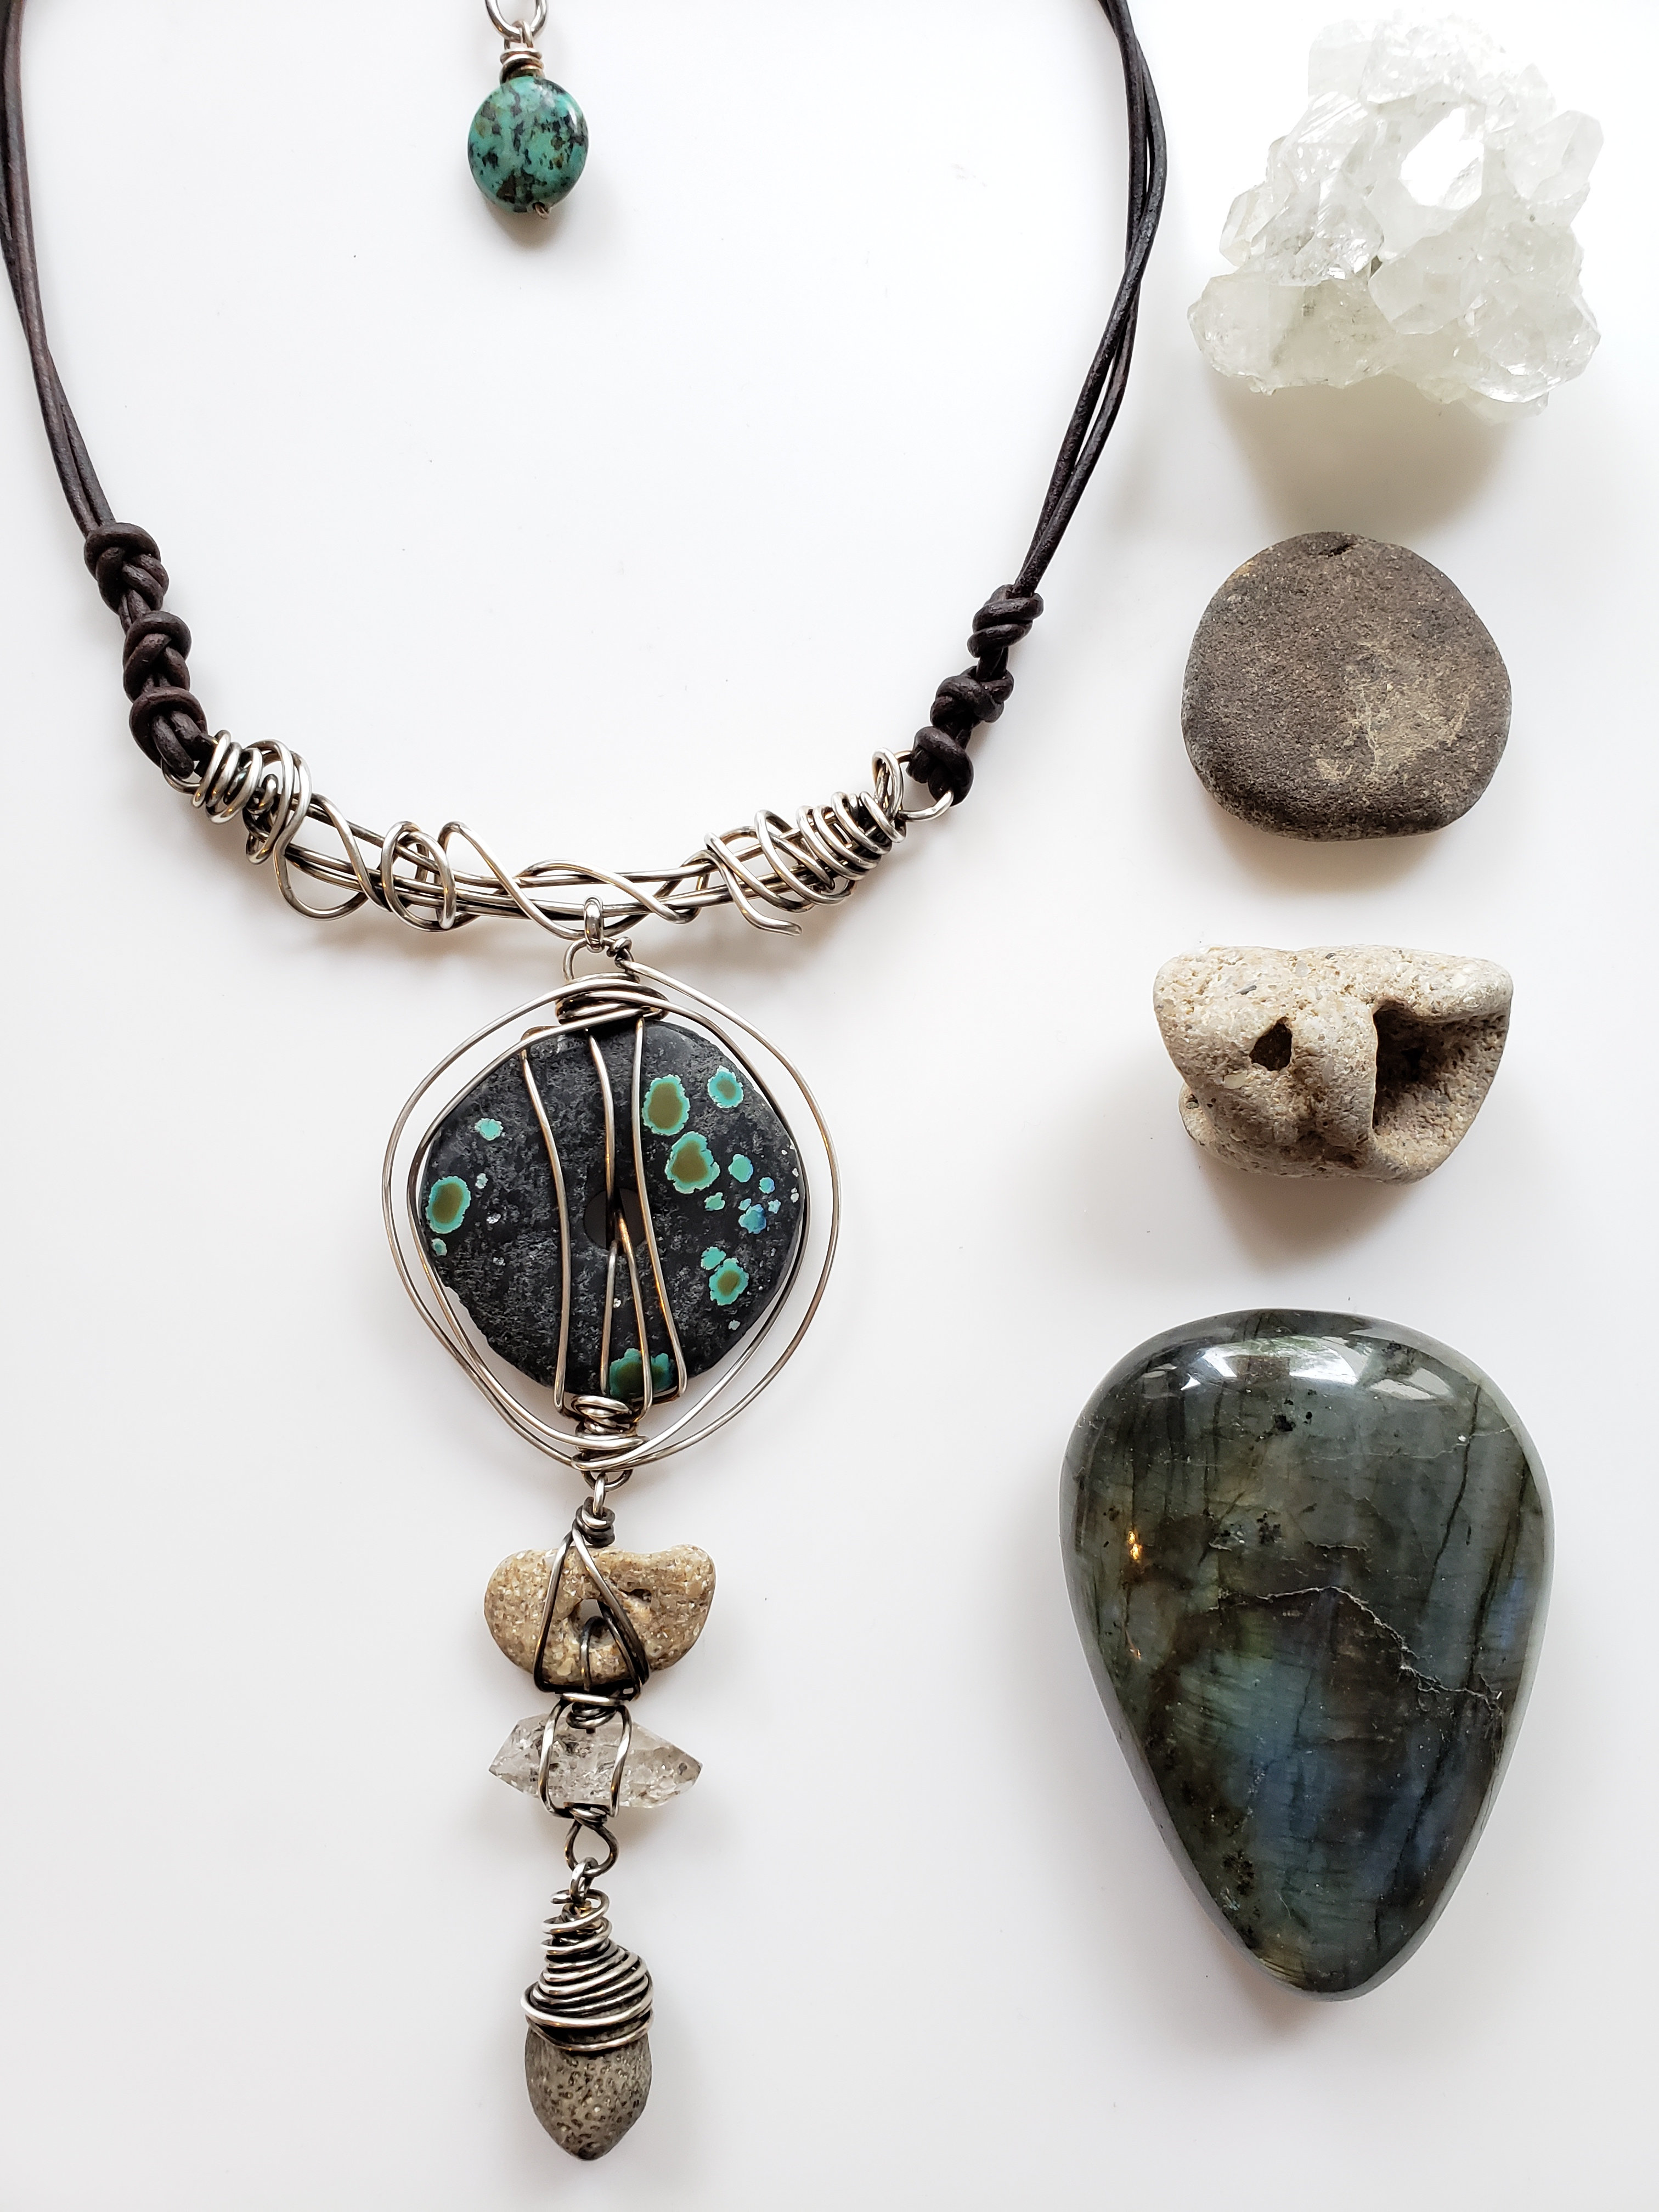 Talisman Of The Traveler Turquoise Hagstone Quartz And Fossil Necklace Stacilouise Discover a diverse selection of high quality, authentic fossils at great prices. talisman of the traveler turquoise hagstone quartz and fossil necklace stacilouise